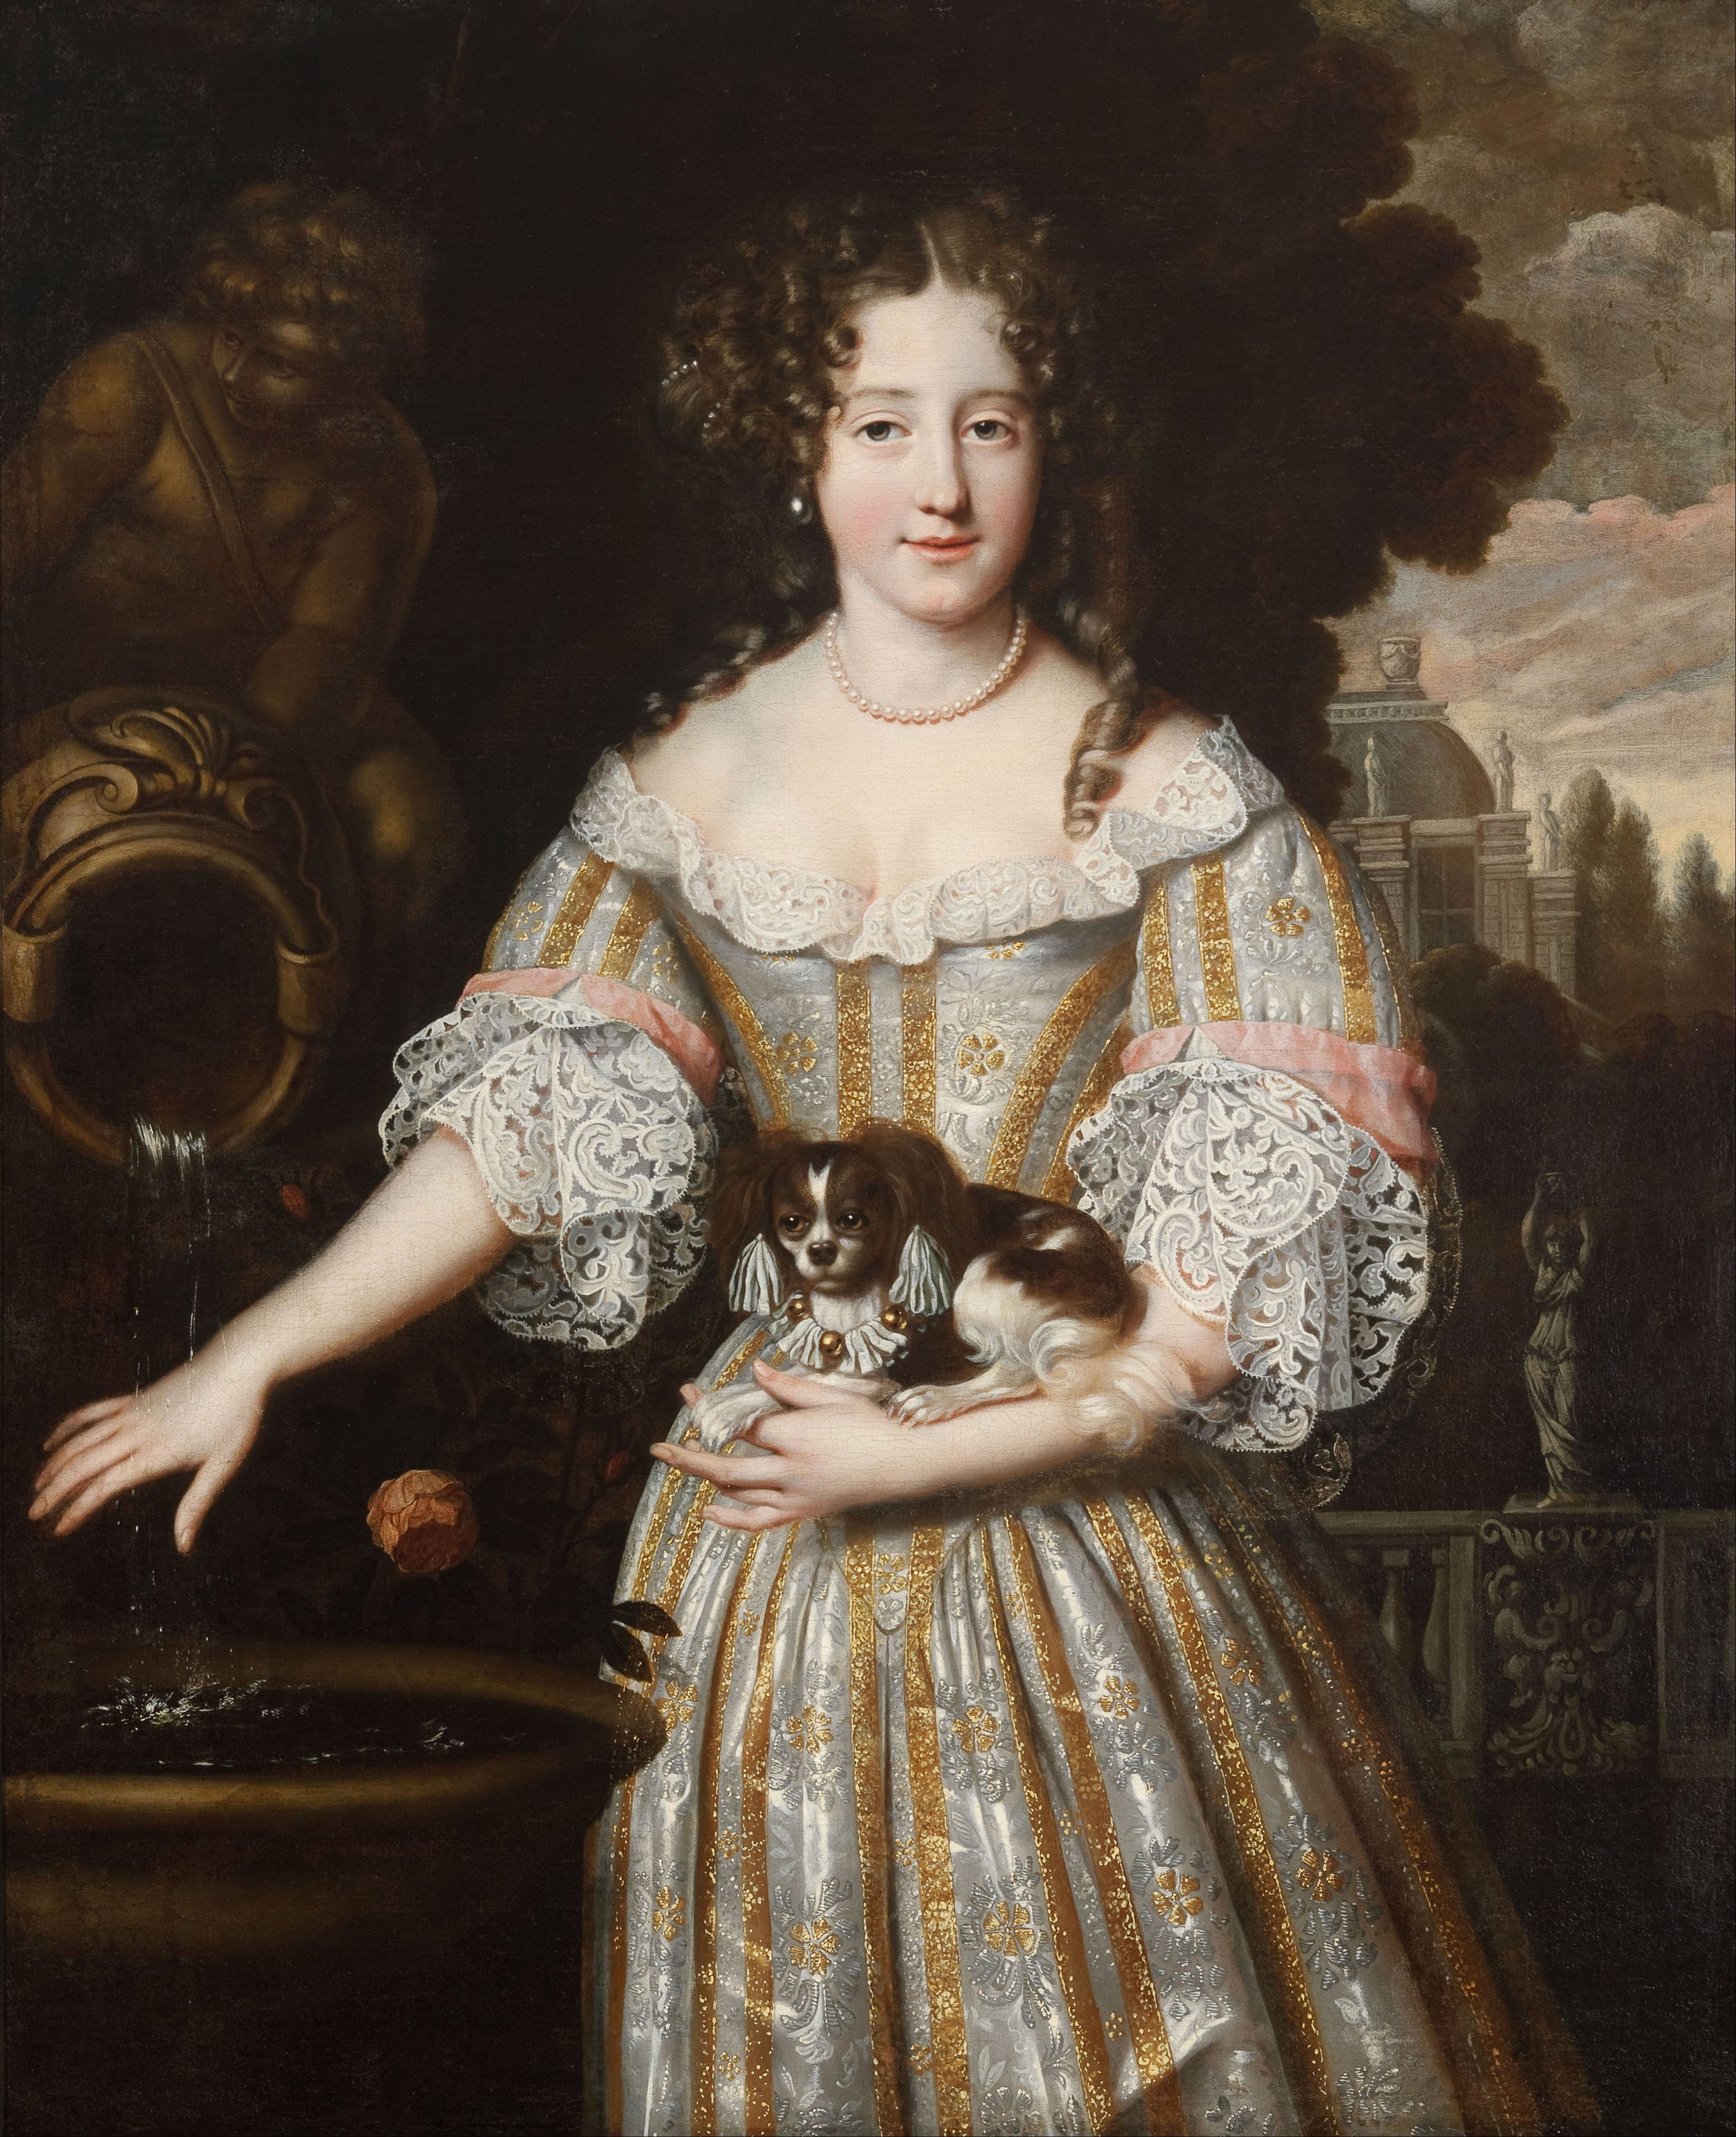 Henri_Gascard_-_Louise_de_Keroualle,_Duchess_of_Portsmouth_-_Google_Art_Project.jpg